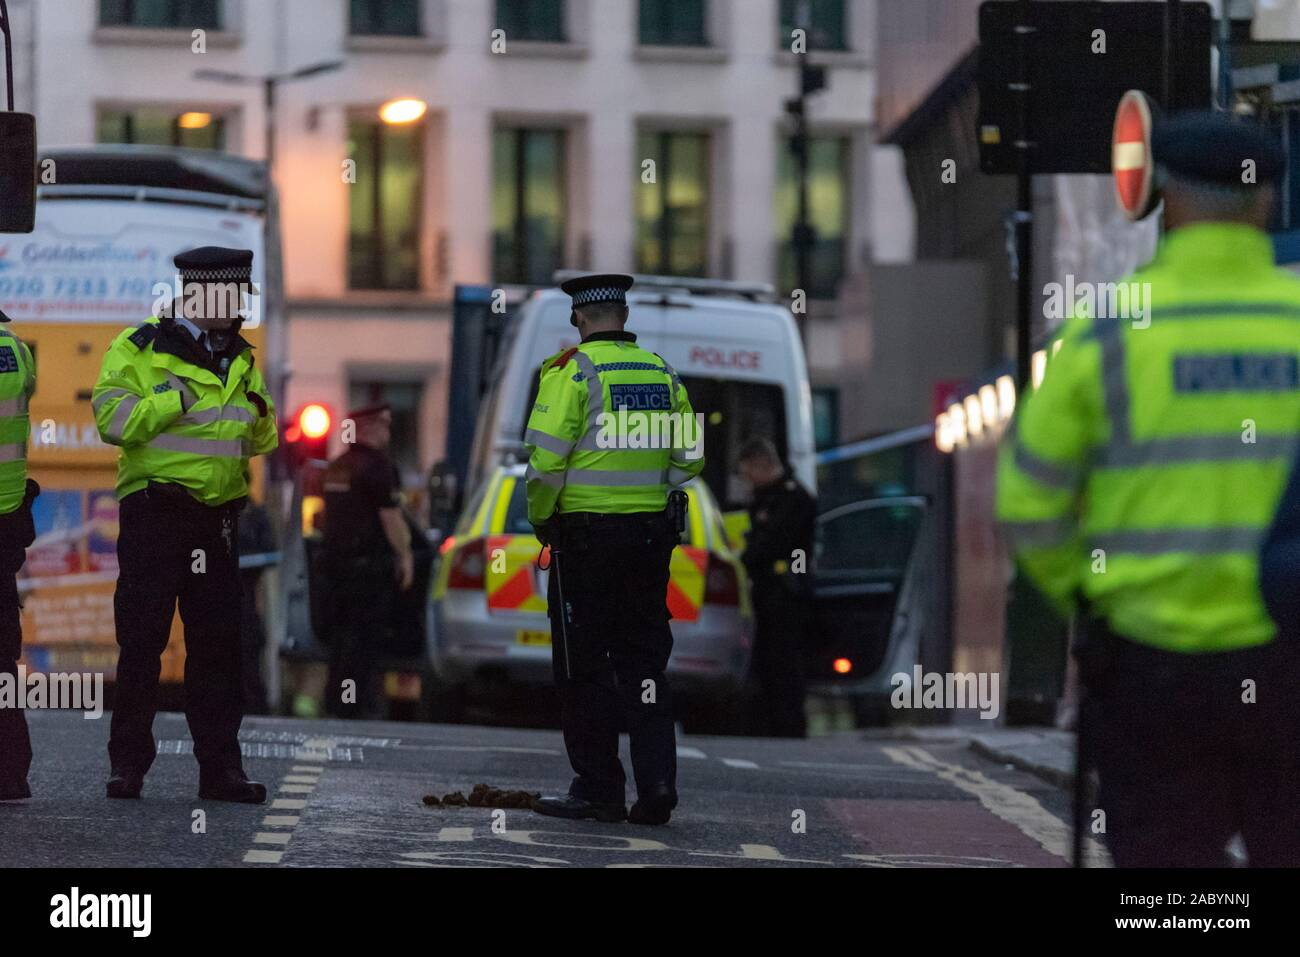 london-bridge-london-uk-29th-nov-2019-police-have-cordoned-off-a-large-area-around-london-bridge-after-a-stabbing-incident-and-gunfire-people-are-being-moved-away-from-the-area-2ABYNNJ.jpg